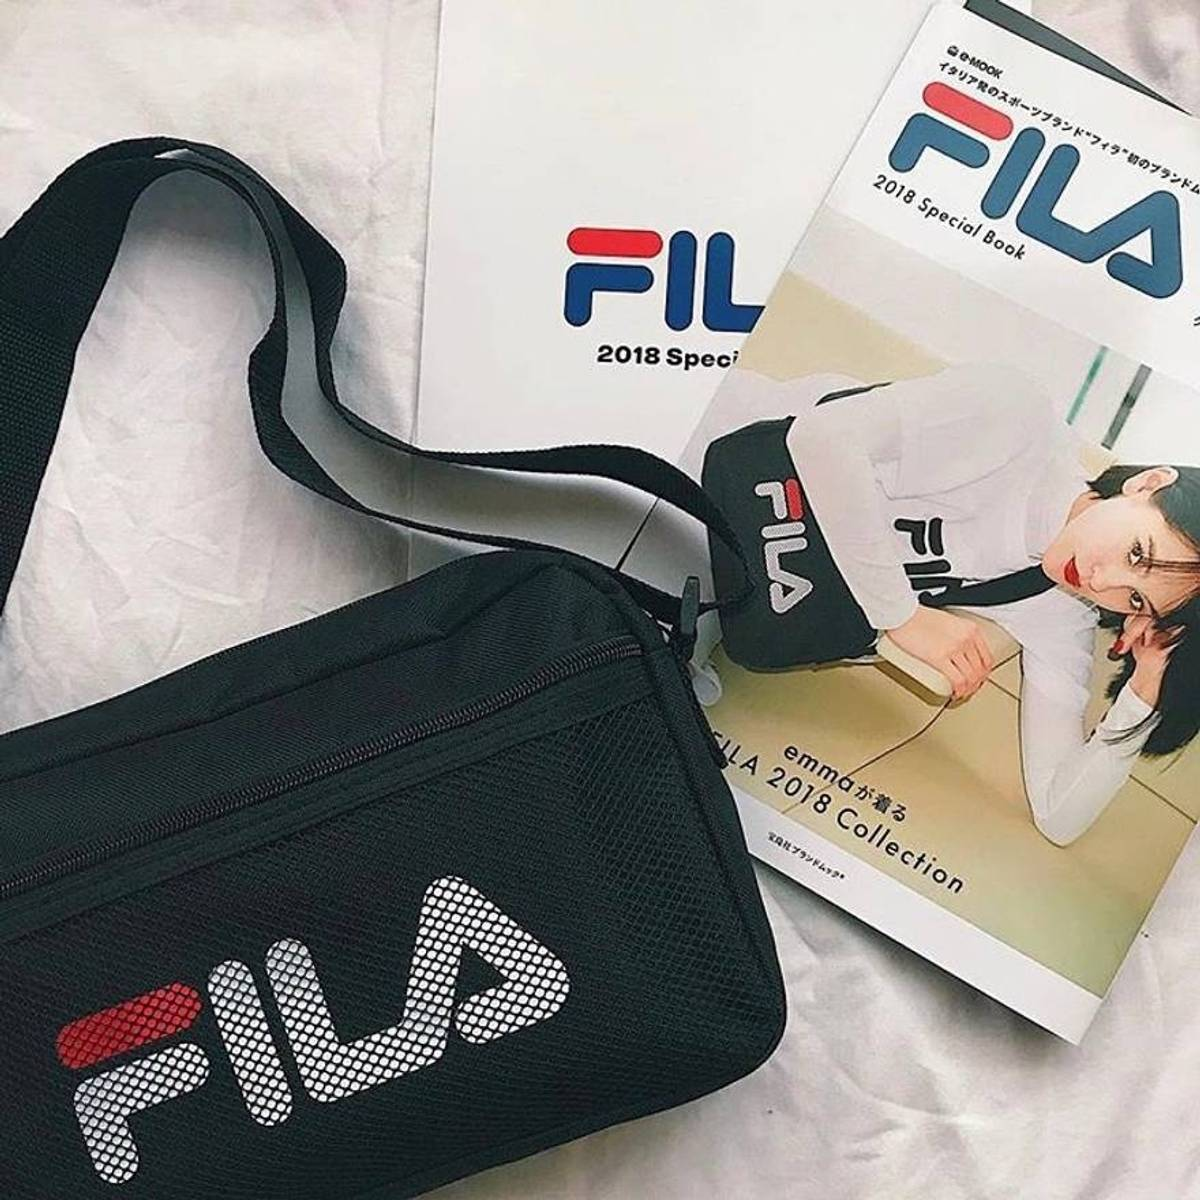 Fila FILA 2018 Magazine Japanese exclusive w  shoulder bag (book + bag)  Size one size - Bags   Luggage for Sale - Grailed 6cfaf3404ceff